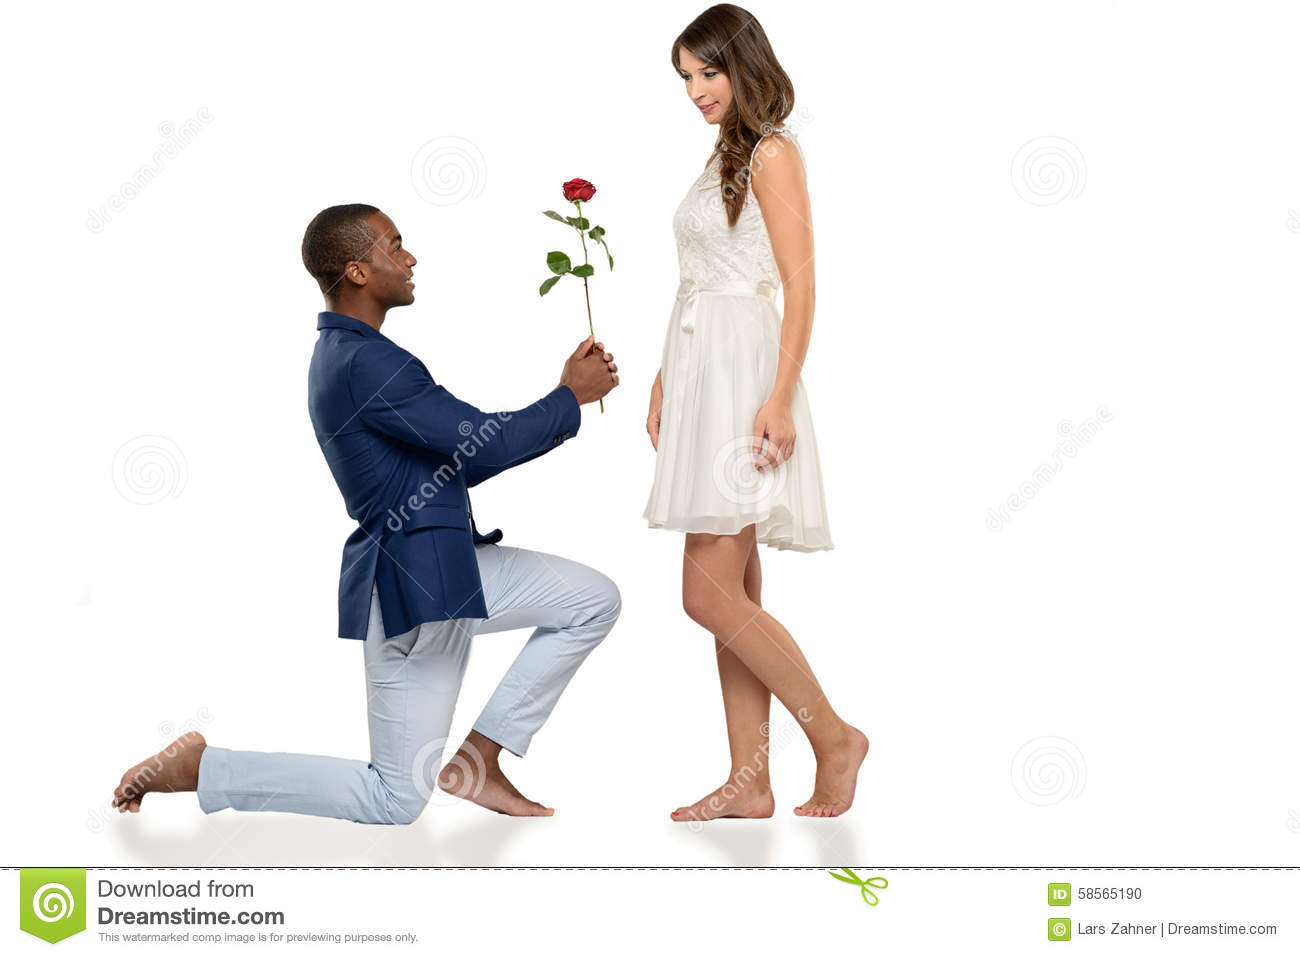 Romantic Barefoot Man Proposing To His Love Stock Photo